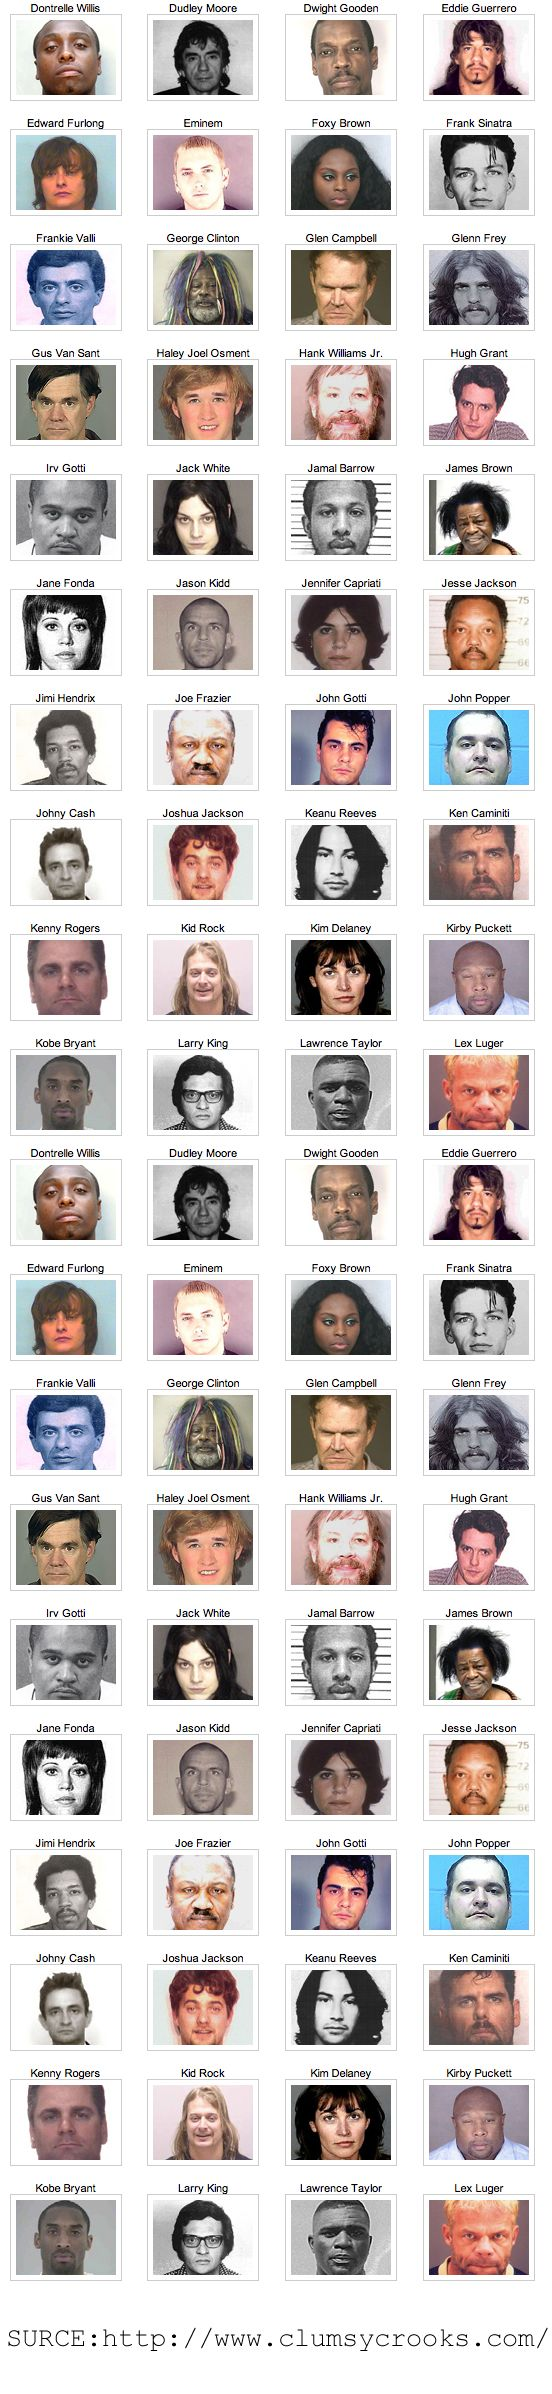 Celebrity Mug Shots! Everyone has one!